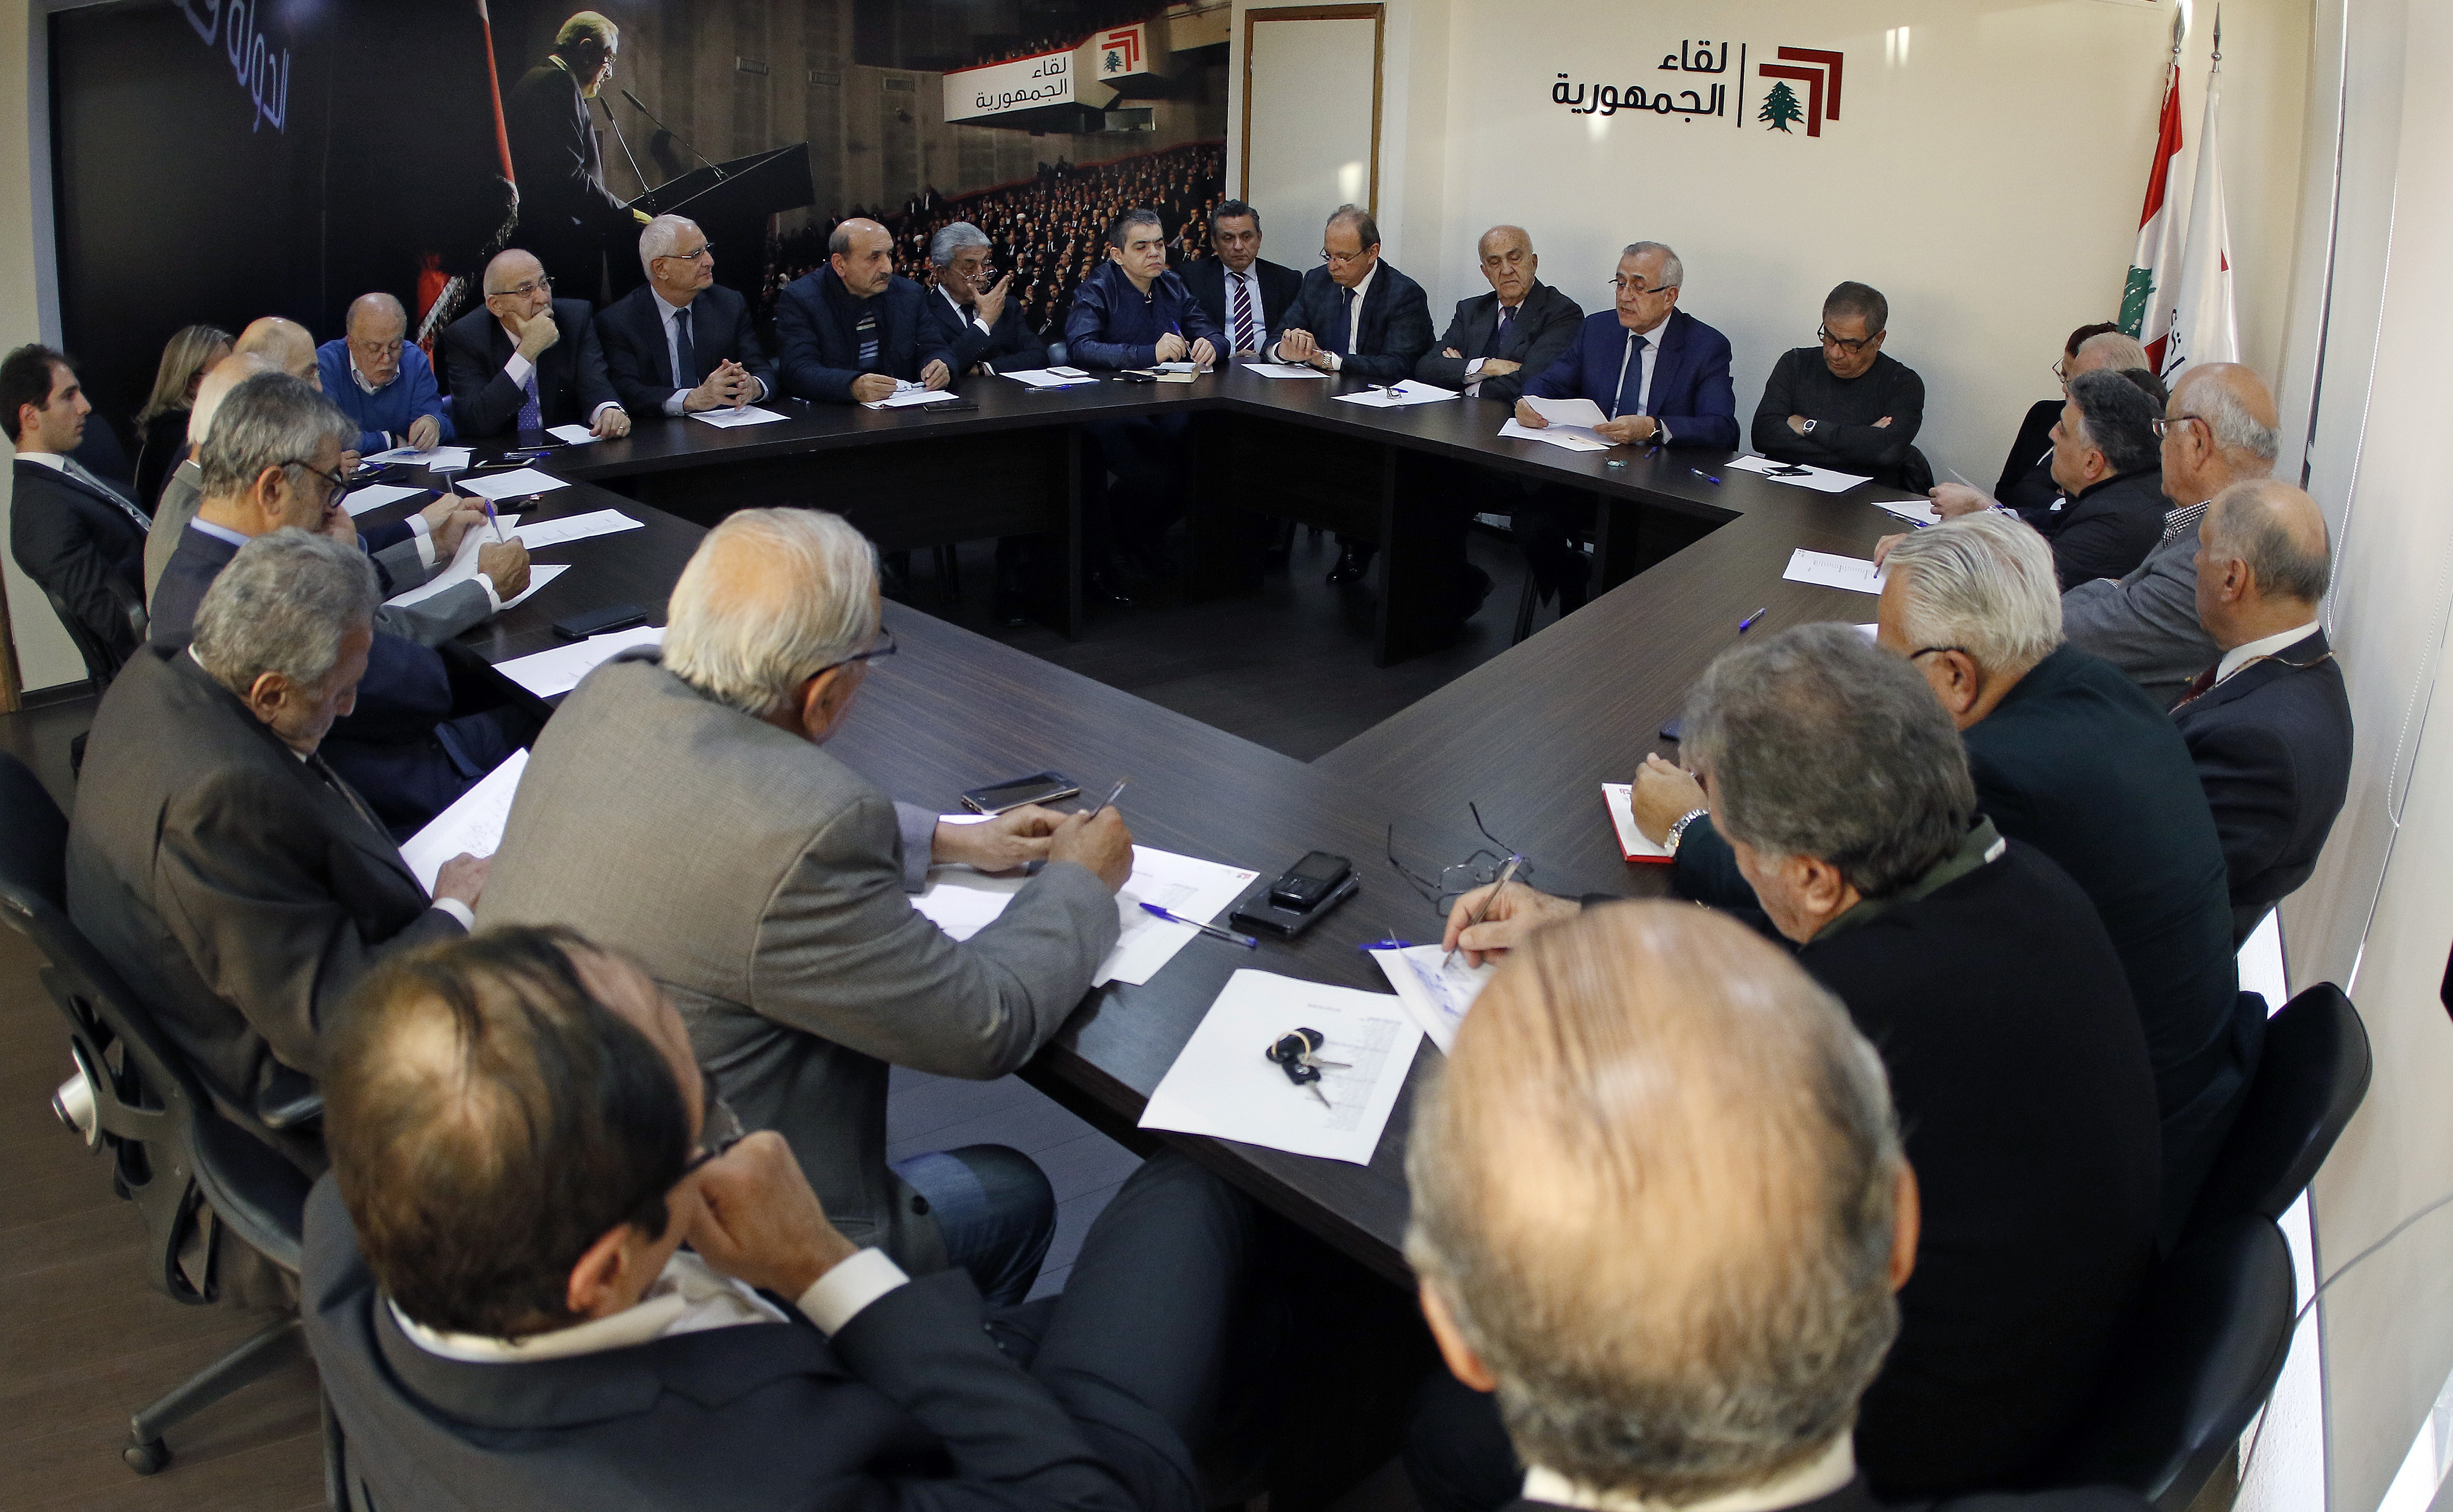 Liaaljoumhouria Meeting 28 02 2018 (2)